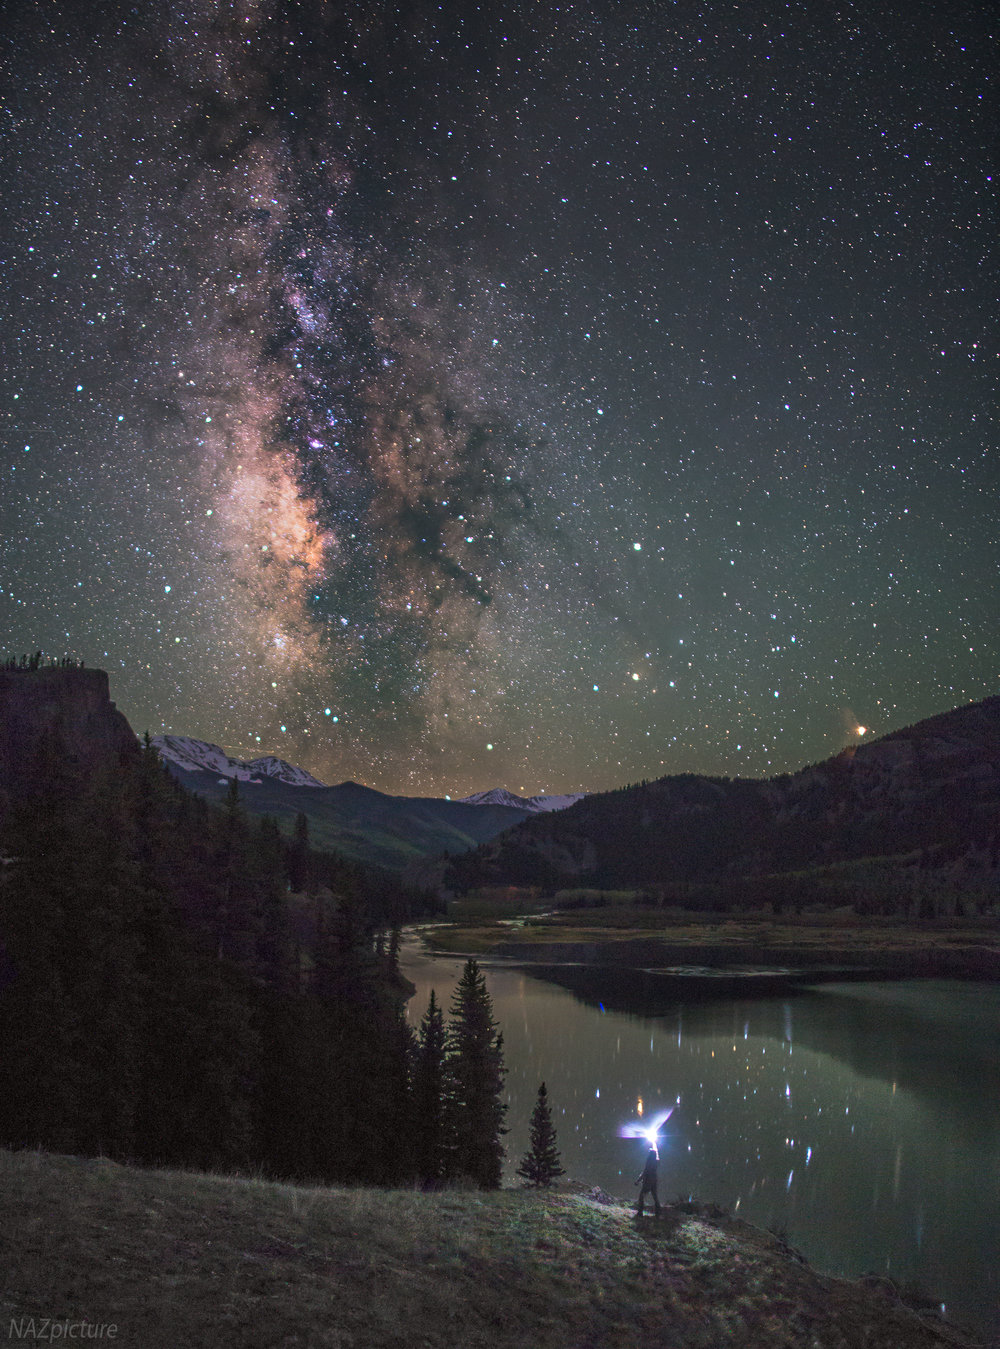 Lake San Cristobal, Colorado during peak Milky Way season. [Lake City, Colorado]